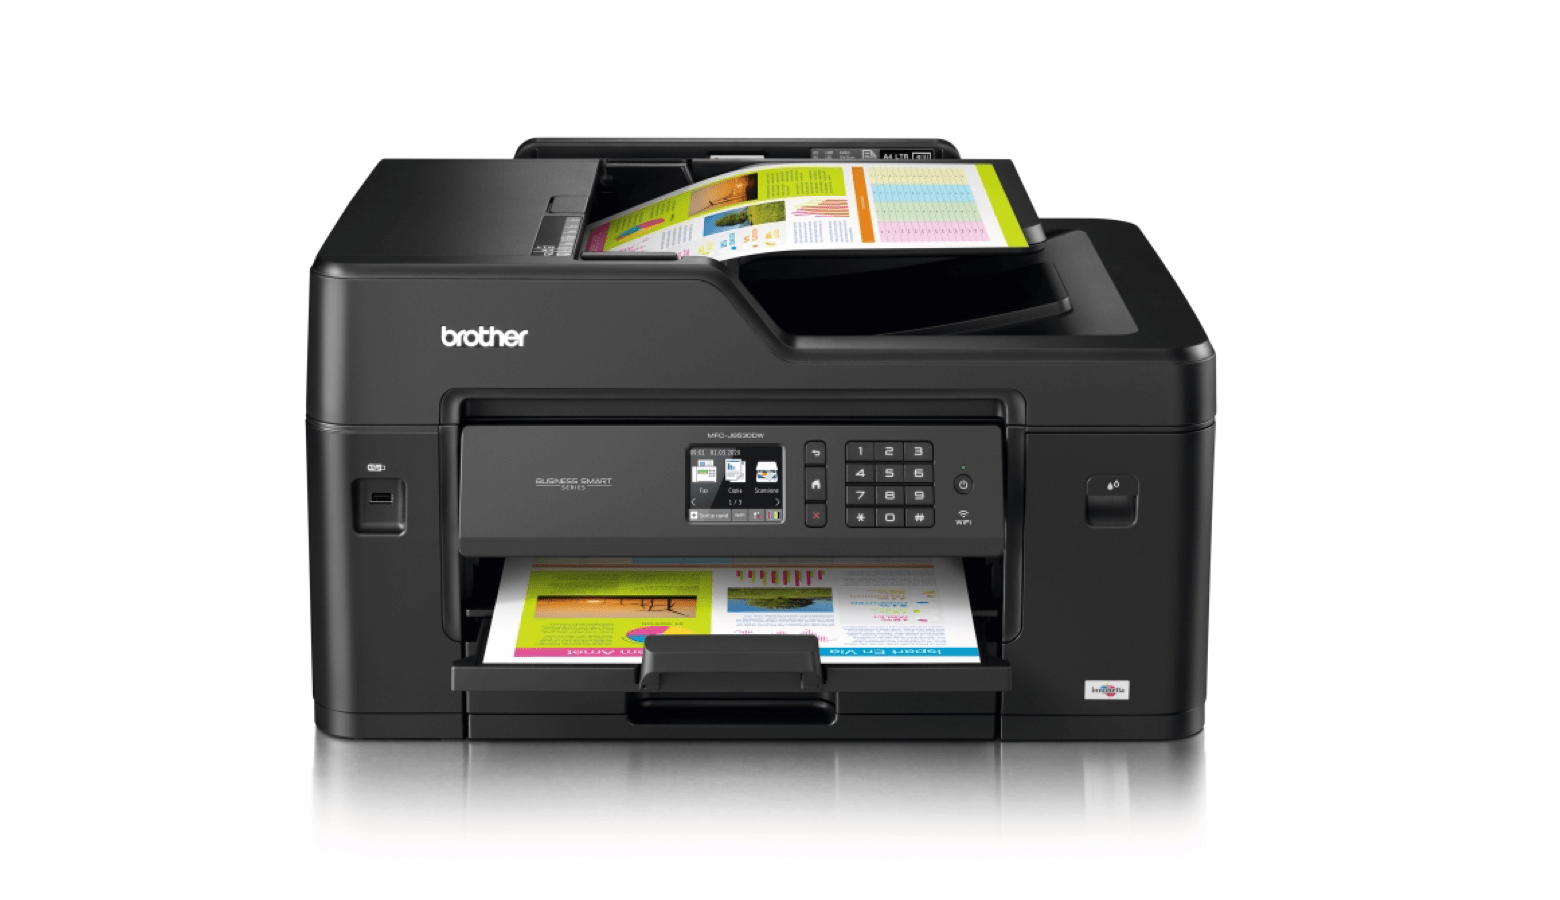 J5000 part of the Business Smart printer range